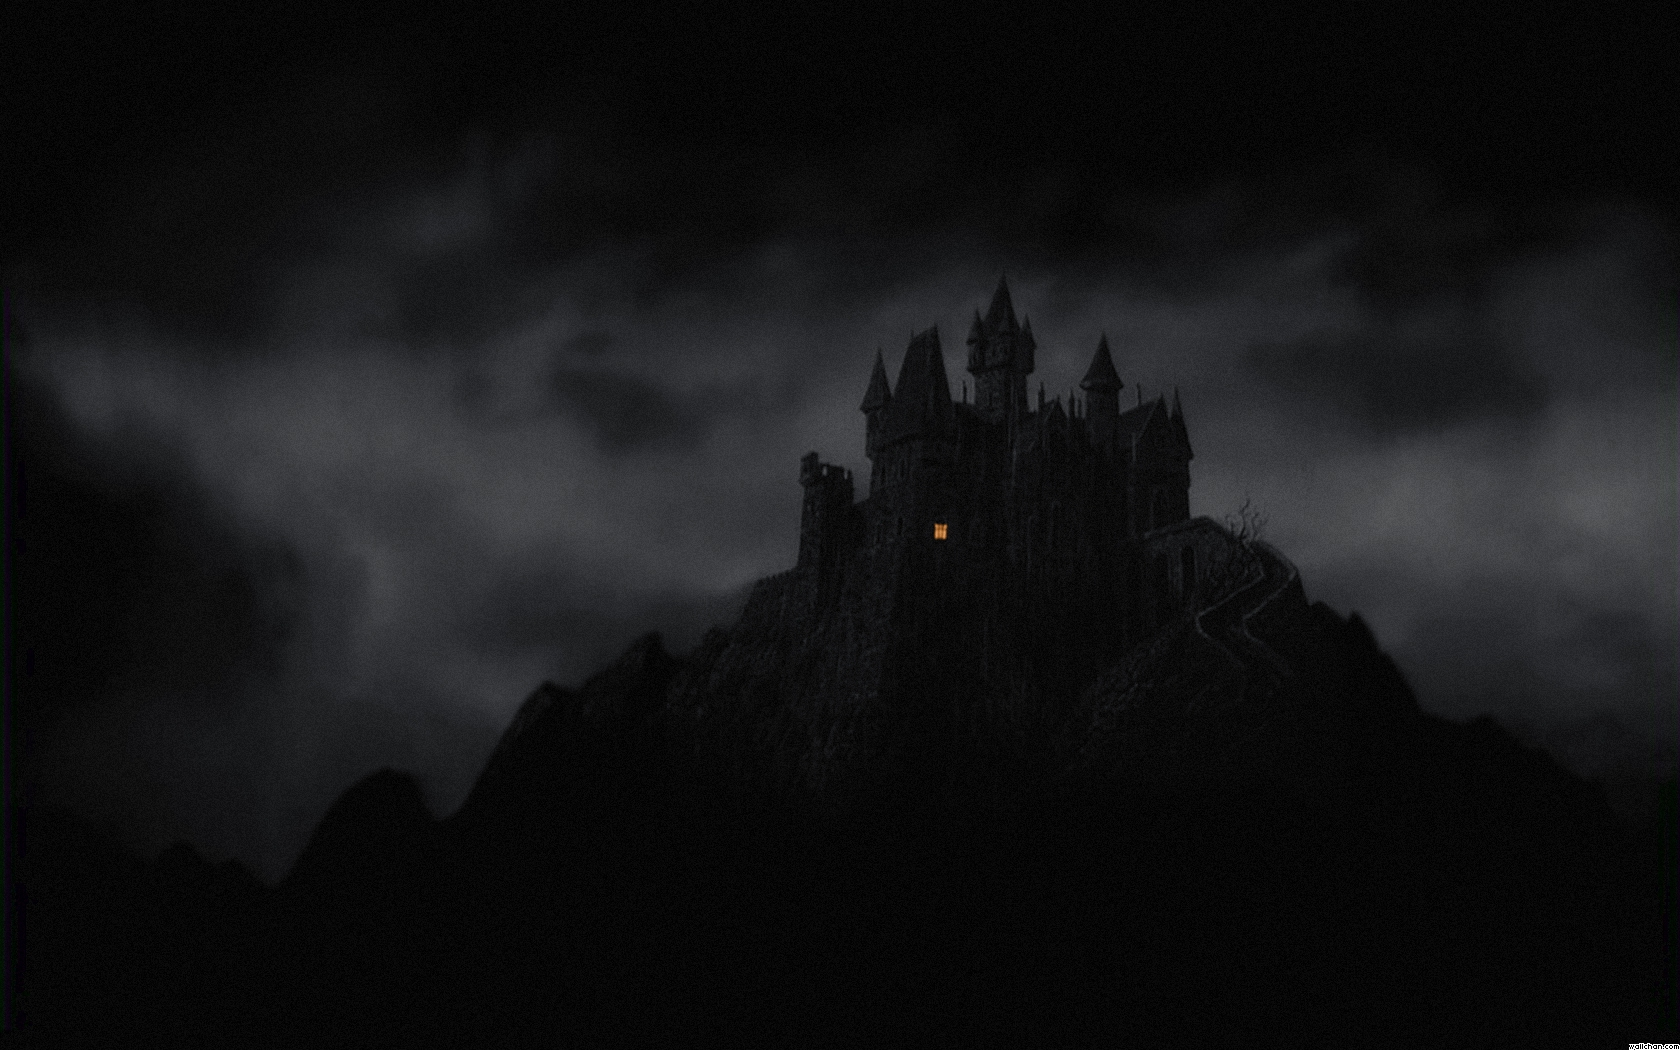 1305875279-fantasy-mountains-castle-dark-night-window-gothic-wallpaper